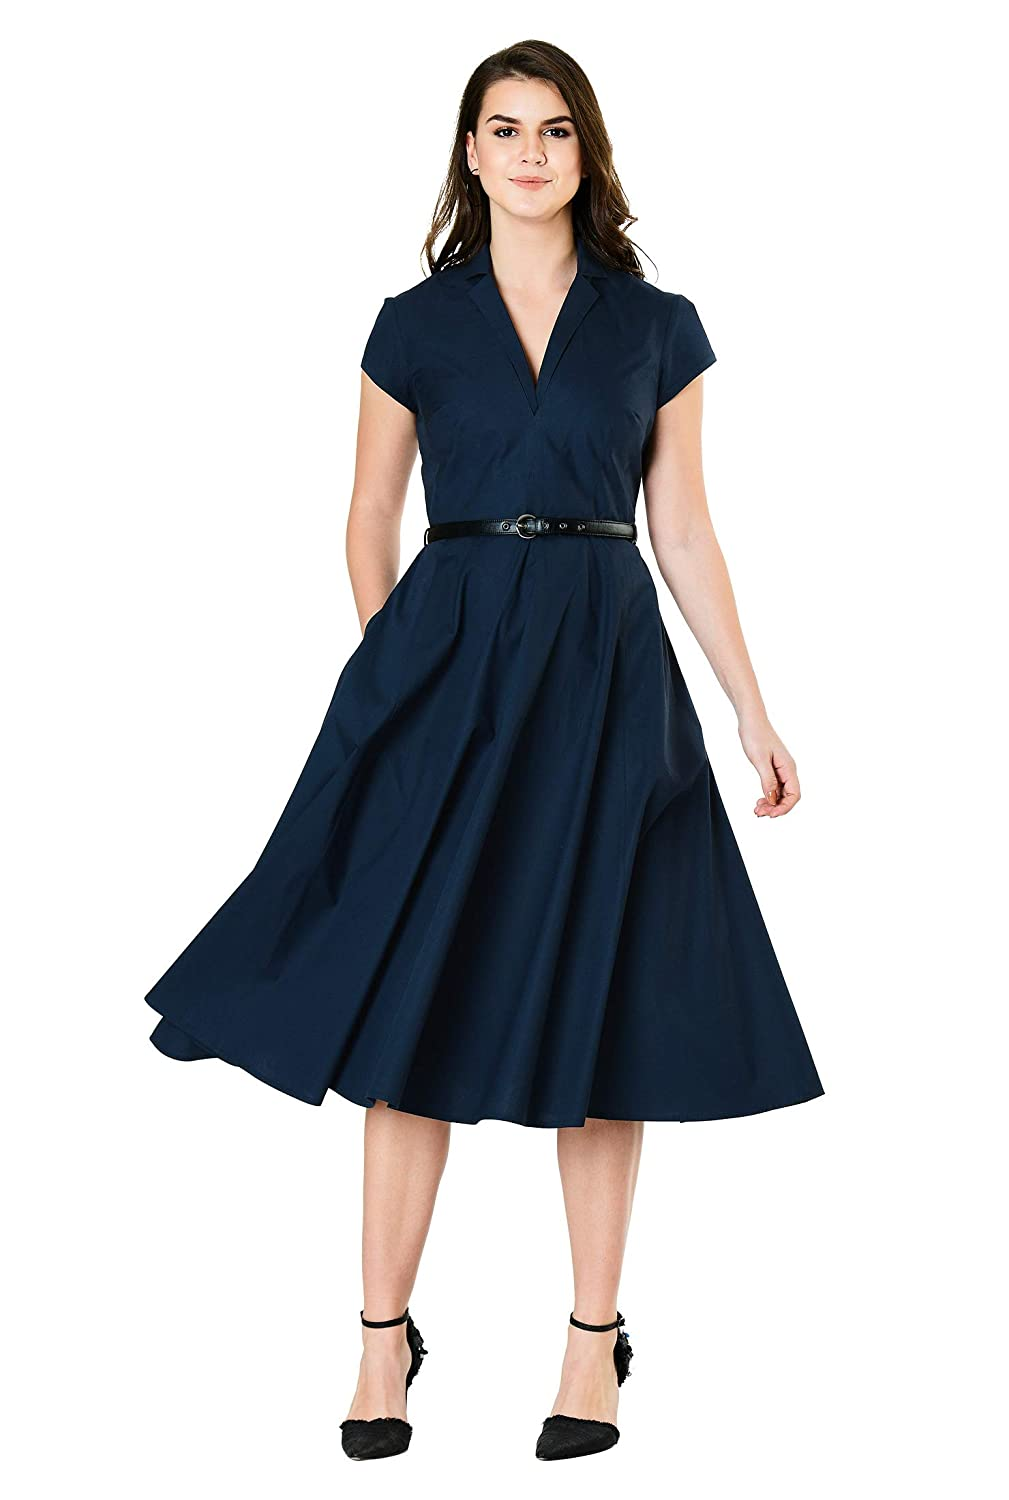 1950s Housewife Dress | 50s Day Dresses eShakti Womens Notch Collar Cotton poplin Belted Dress $69.95 AT vintagedancer.com